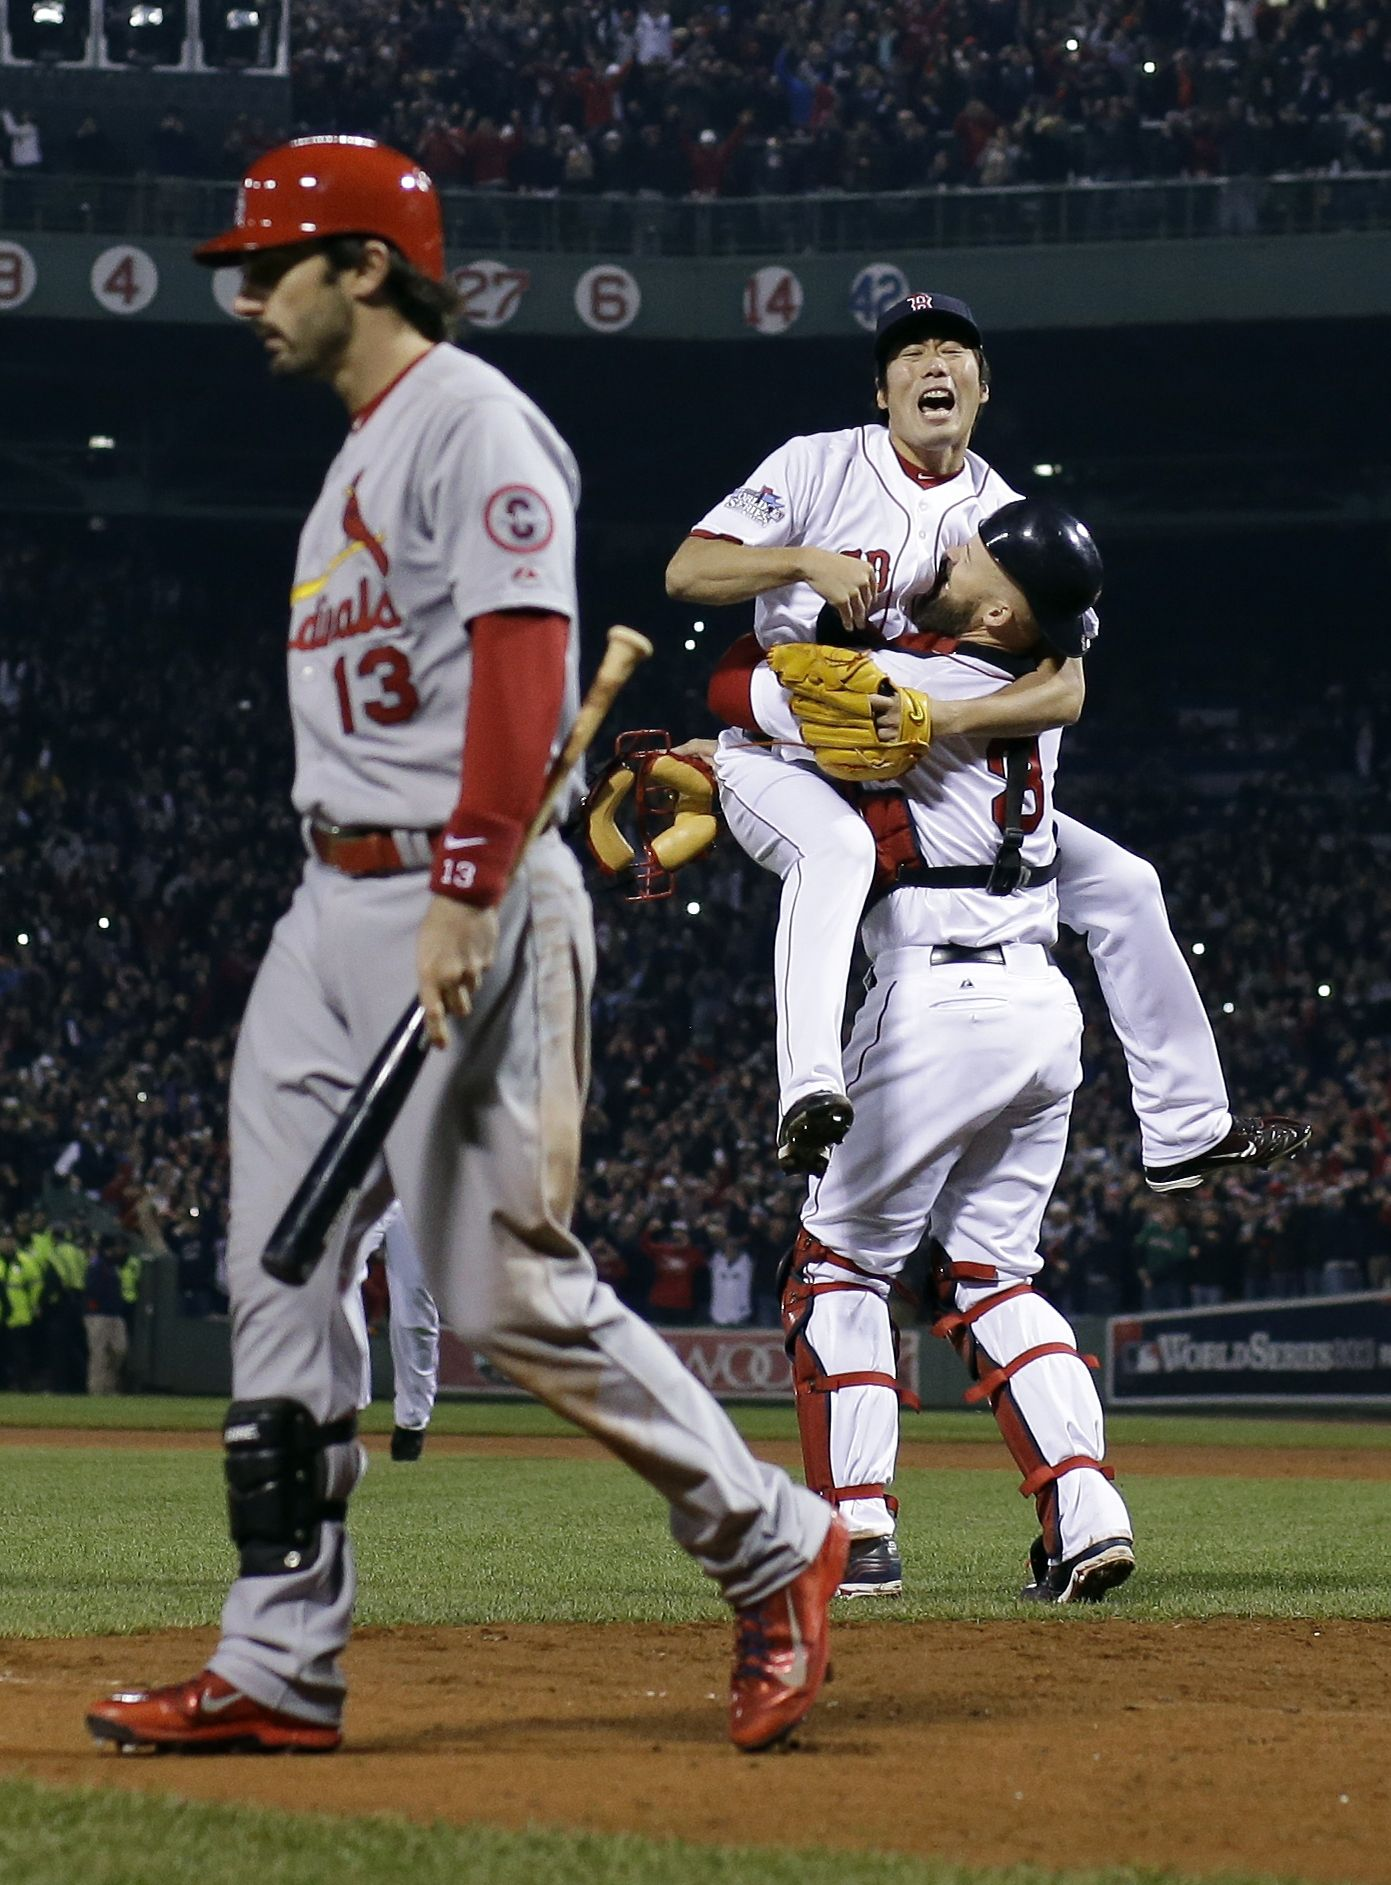 Red Sox win WS title beat Cards 6 1 in Game 6 1391x1885